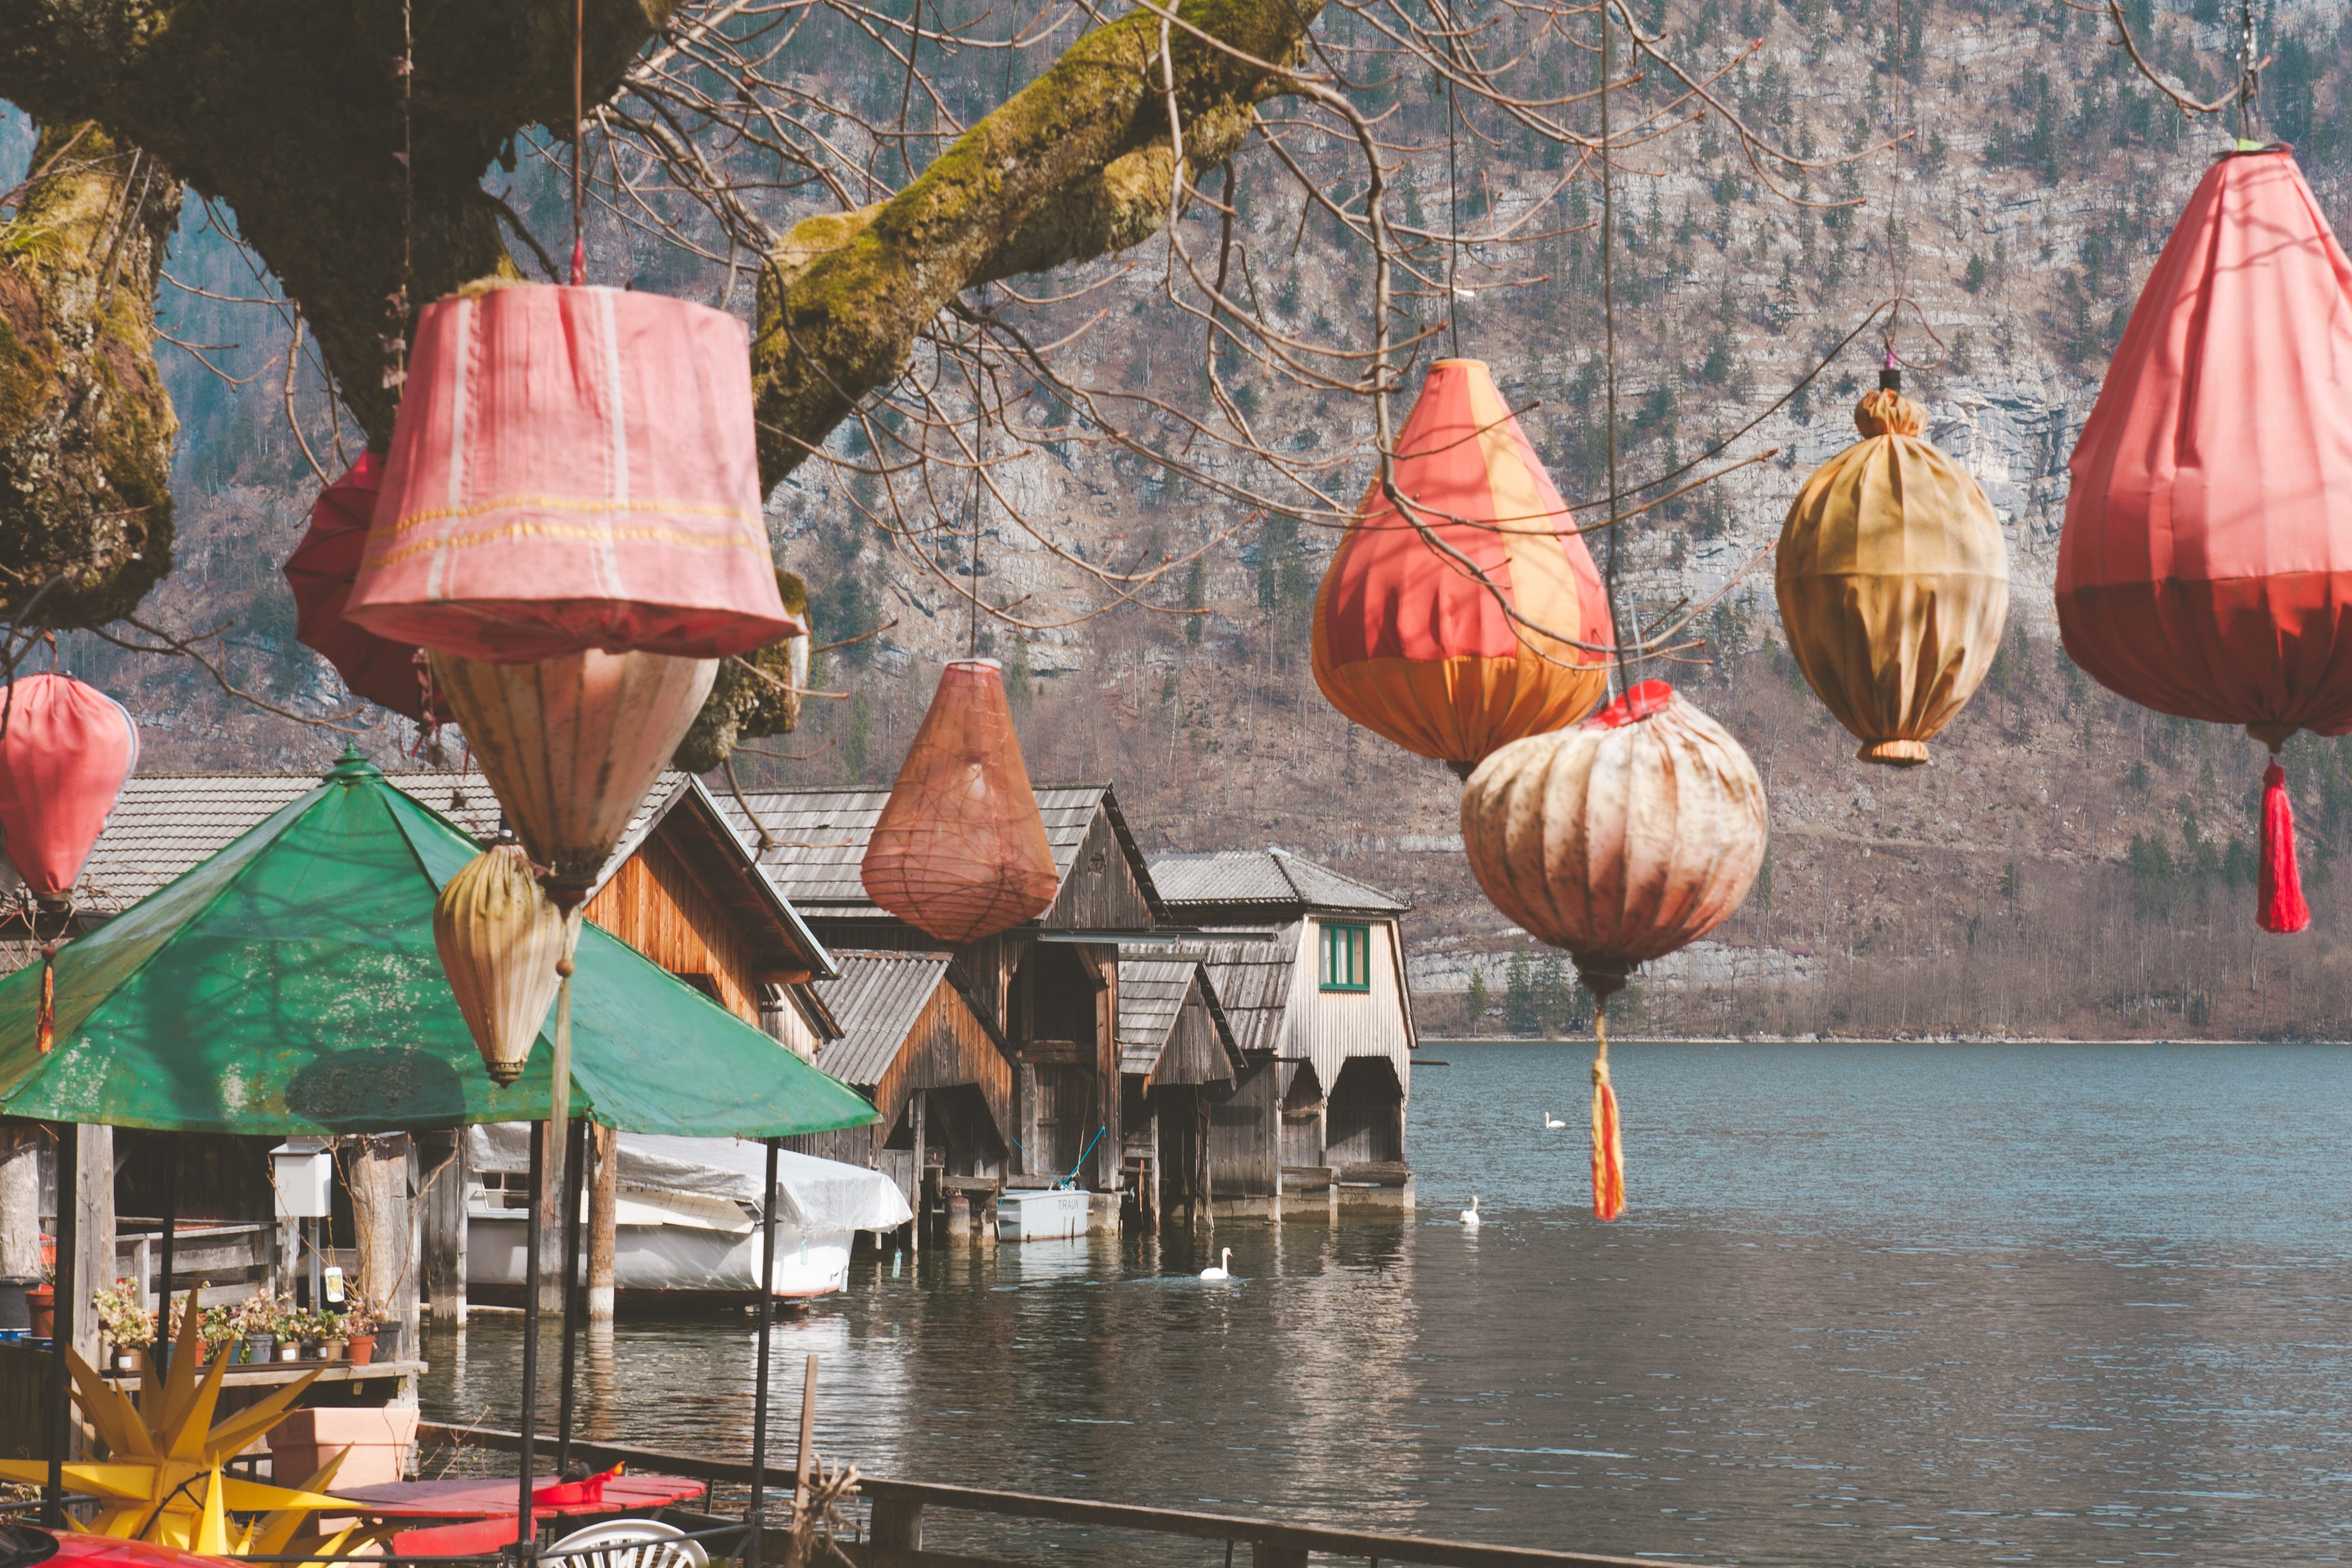 Houses With Lanterns Near Body of Water